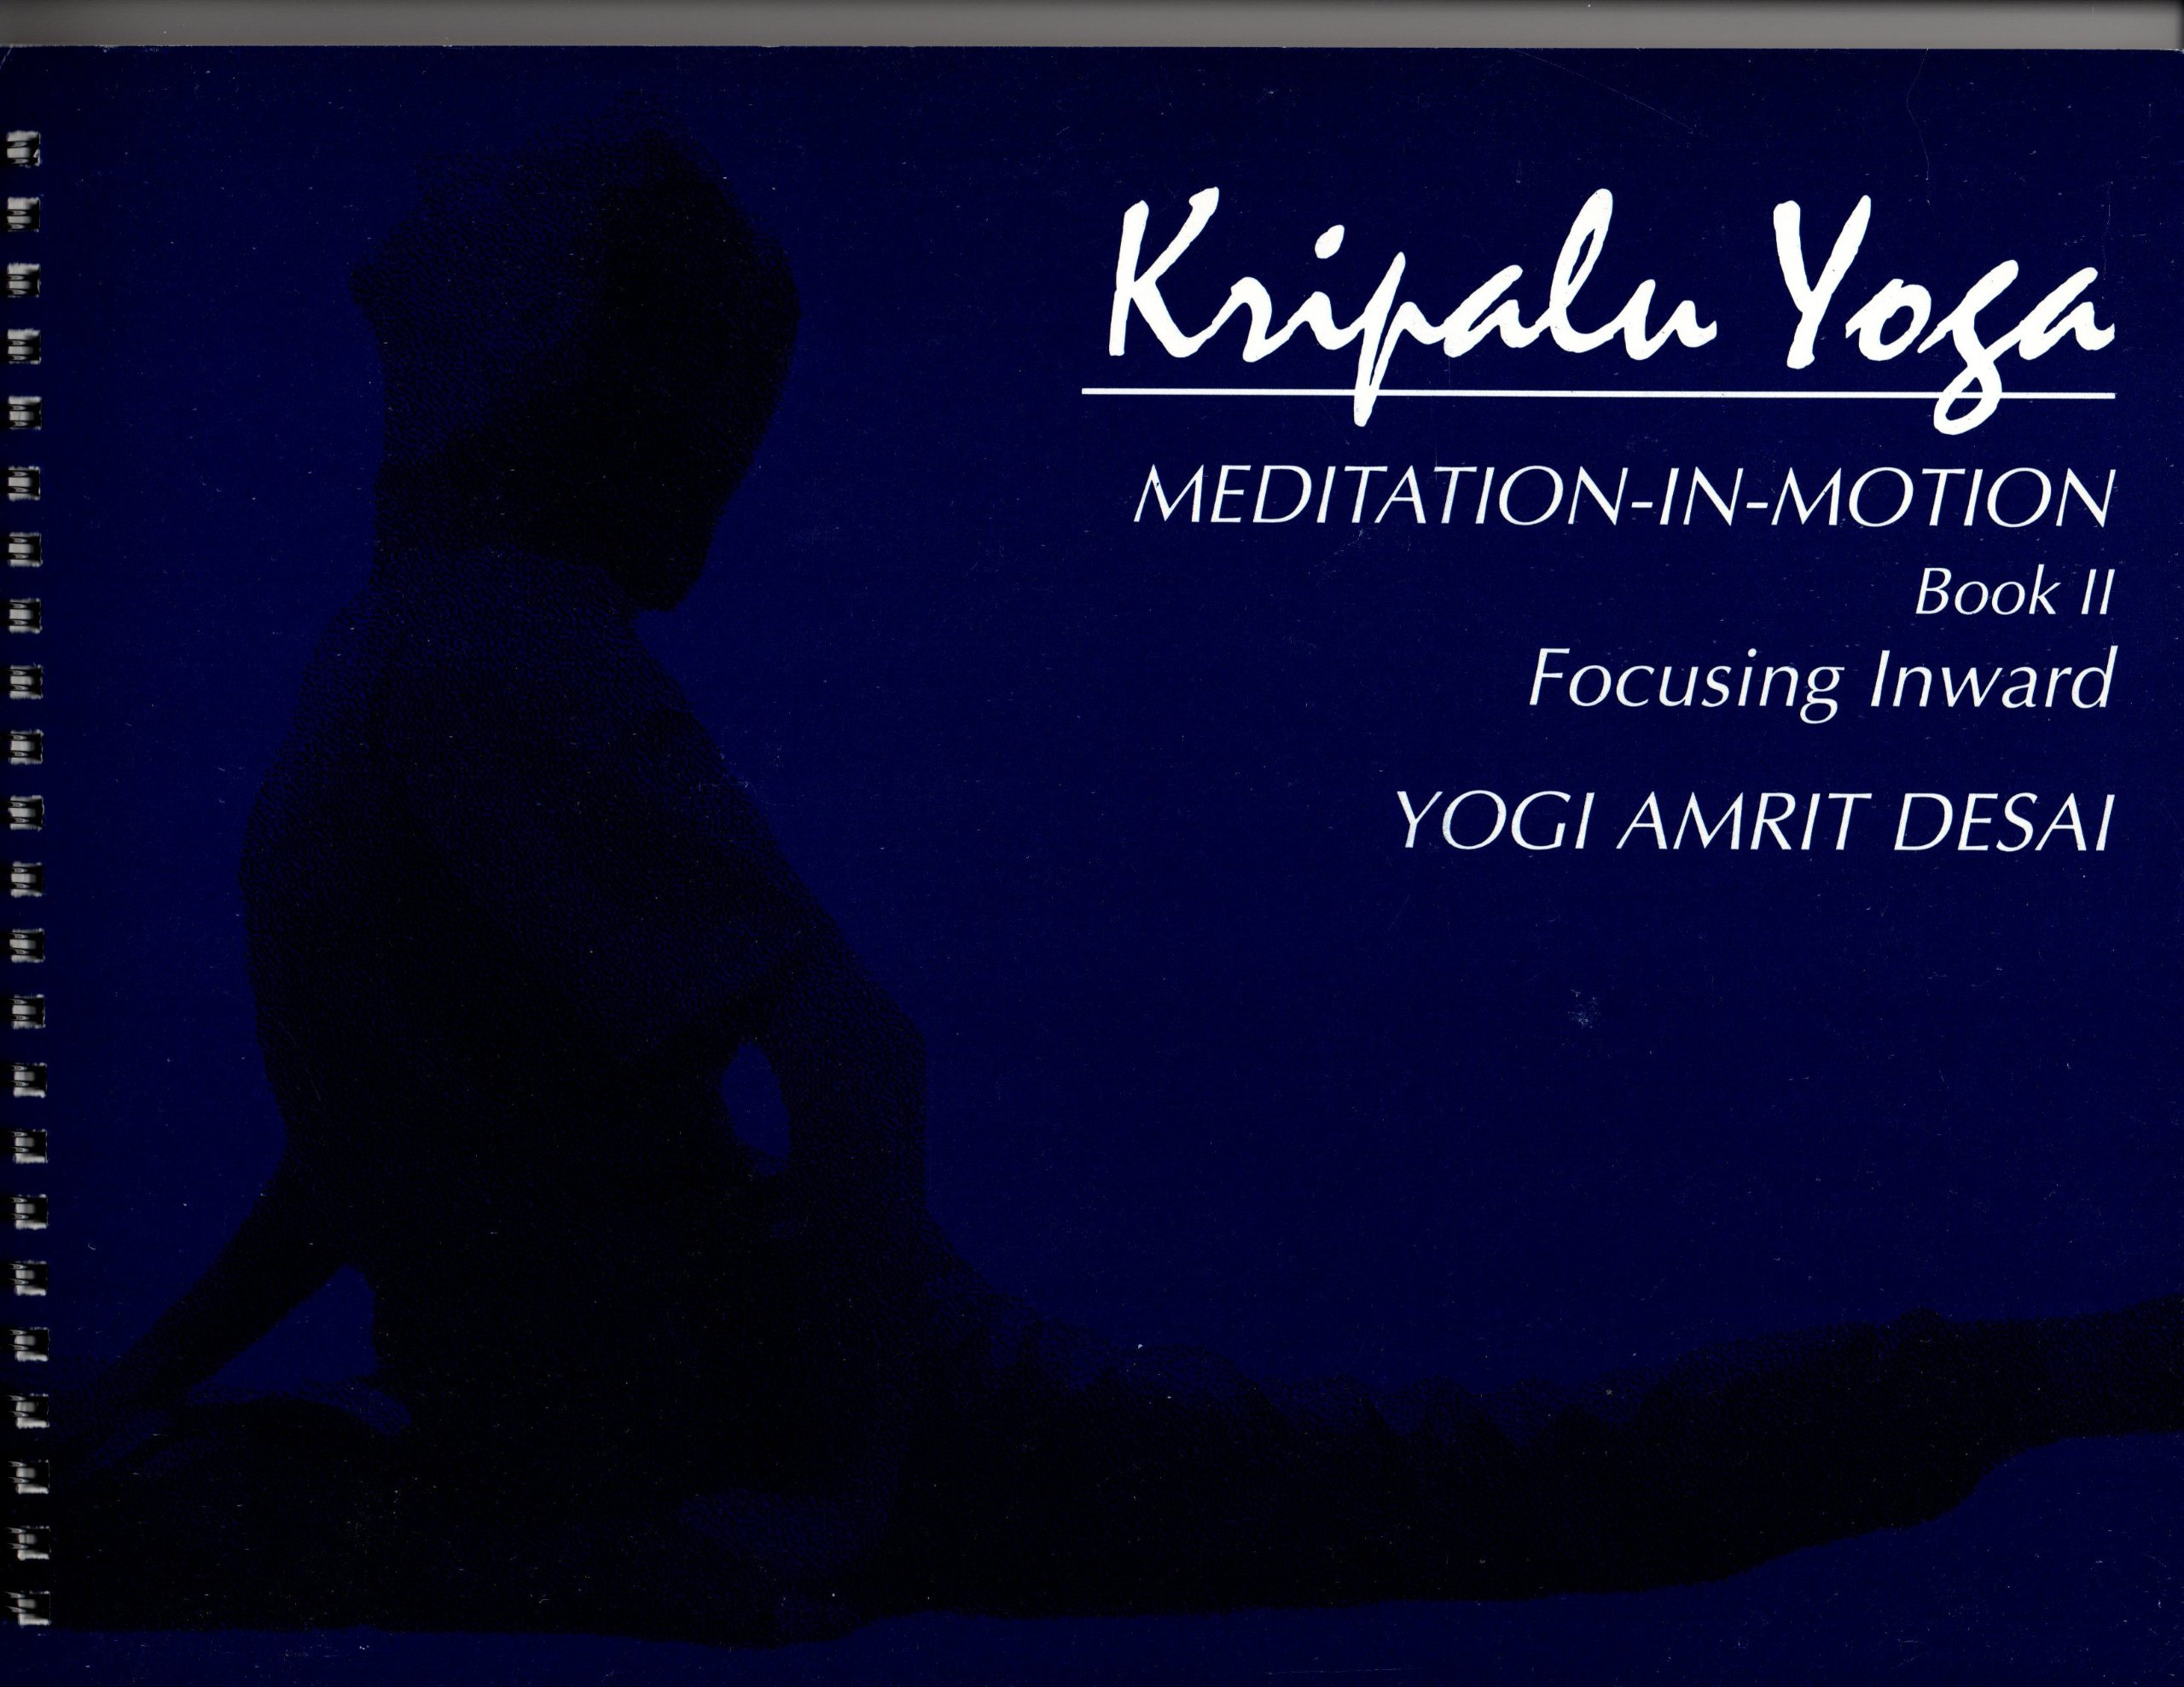 Kripalu Yoga: Meditation-In-Motion Book II, Focusing Inward: Desai